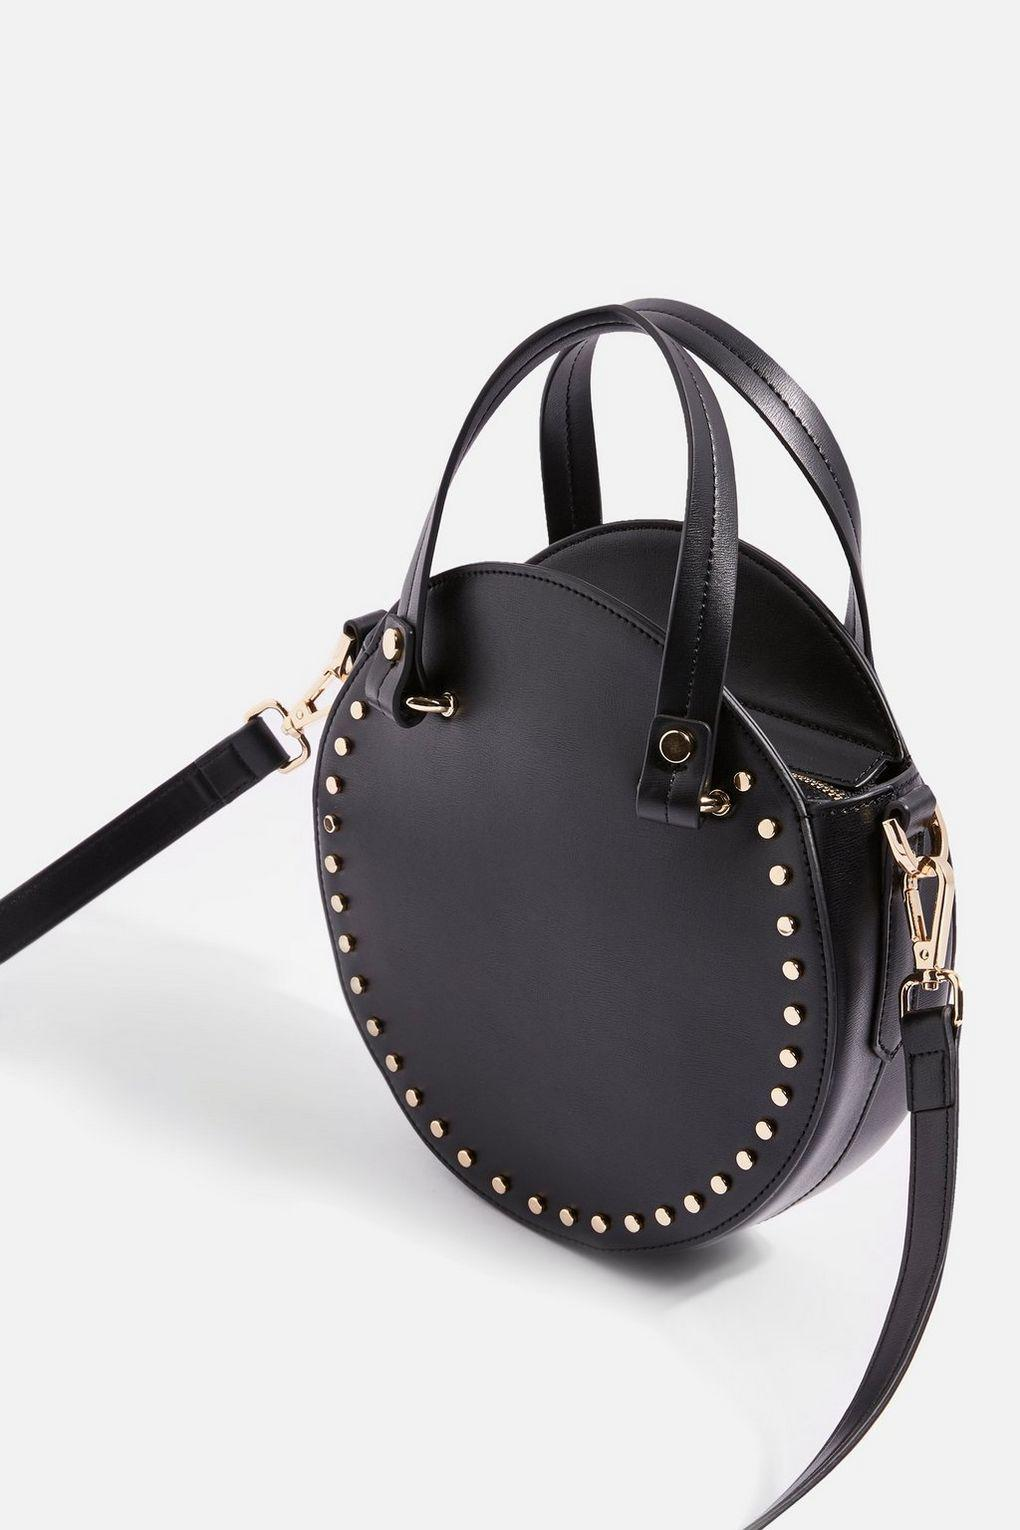 TOPSHOP Taylor Round Circle Studded Tote Bag in Black